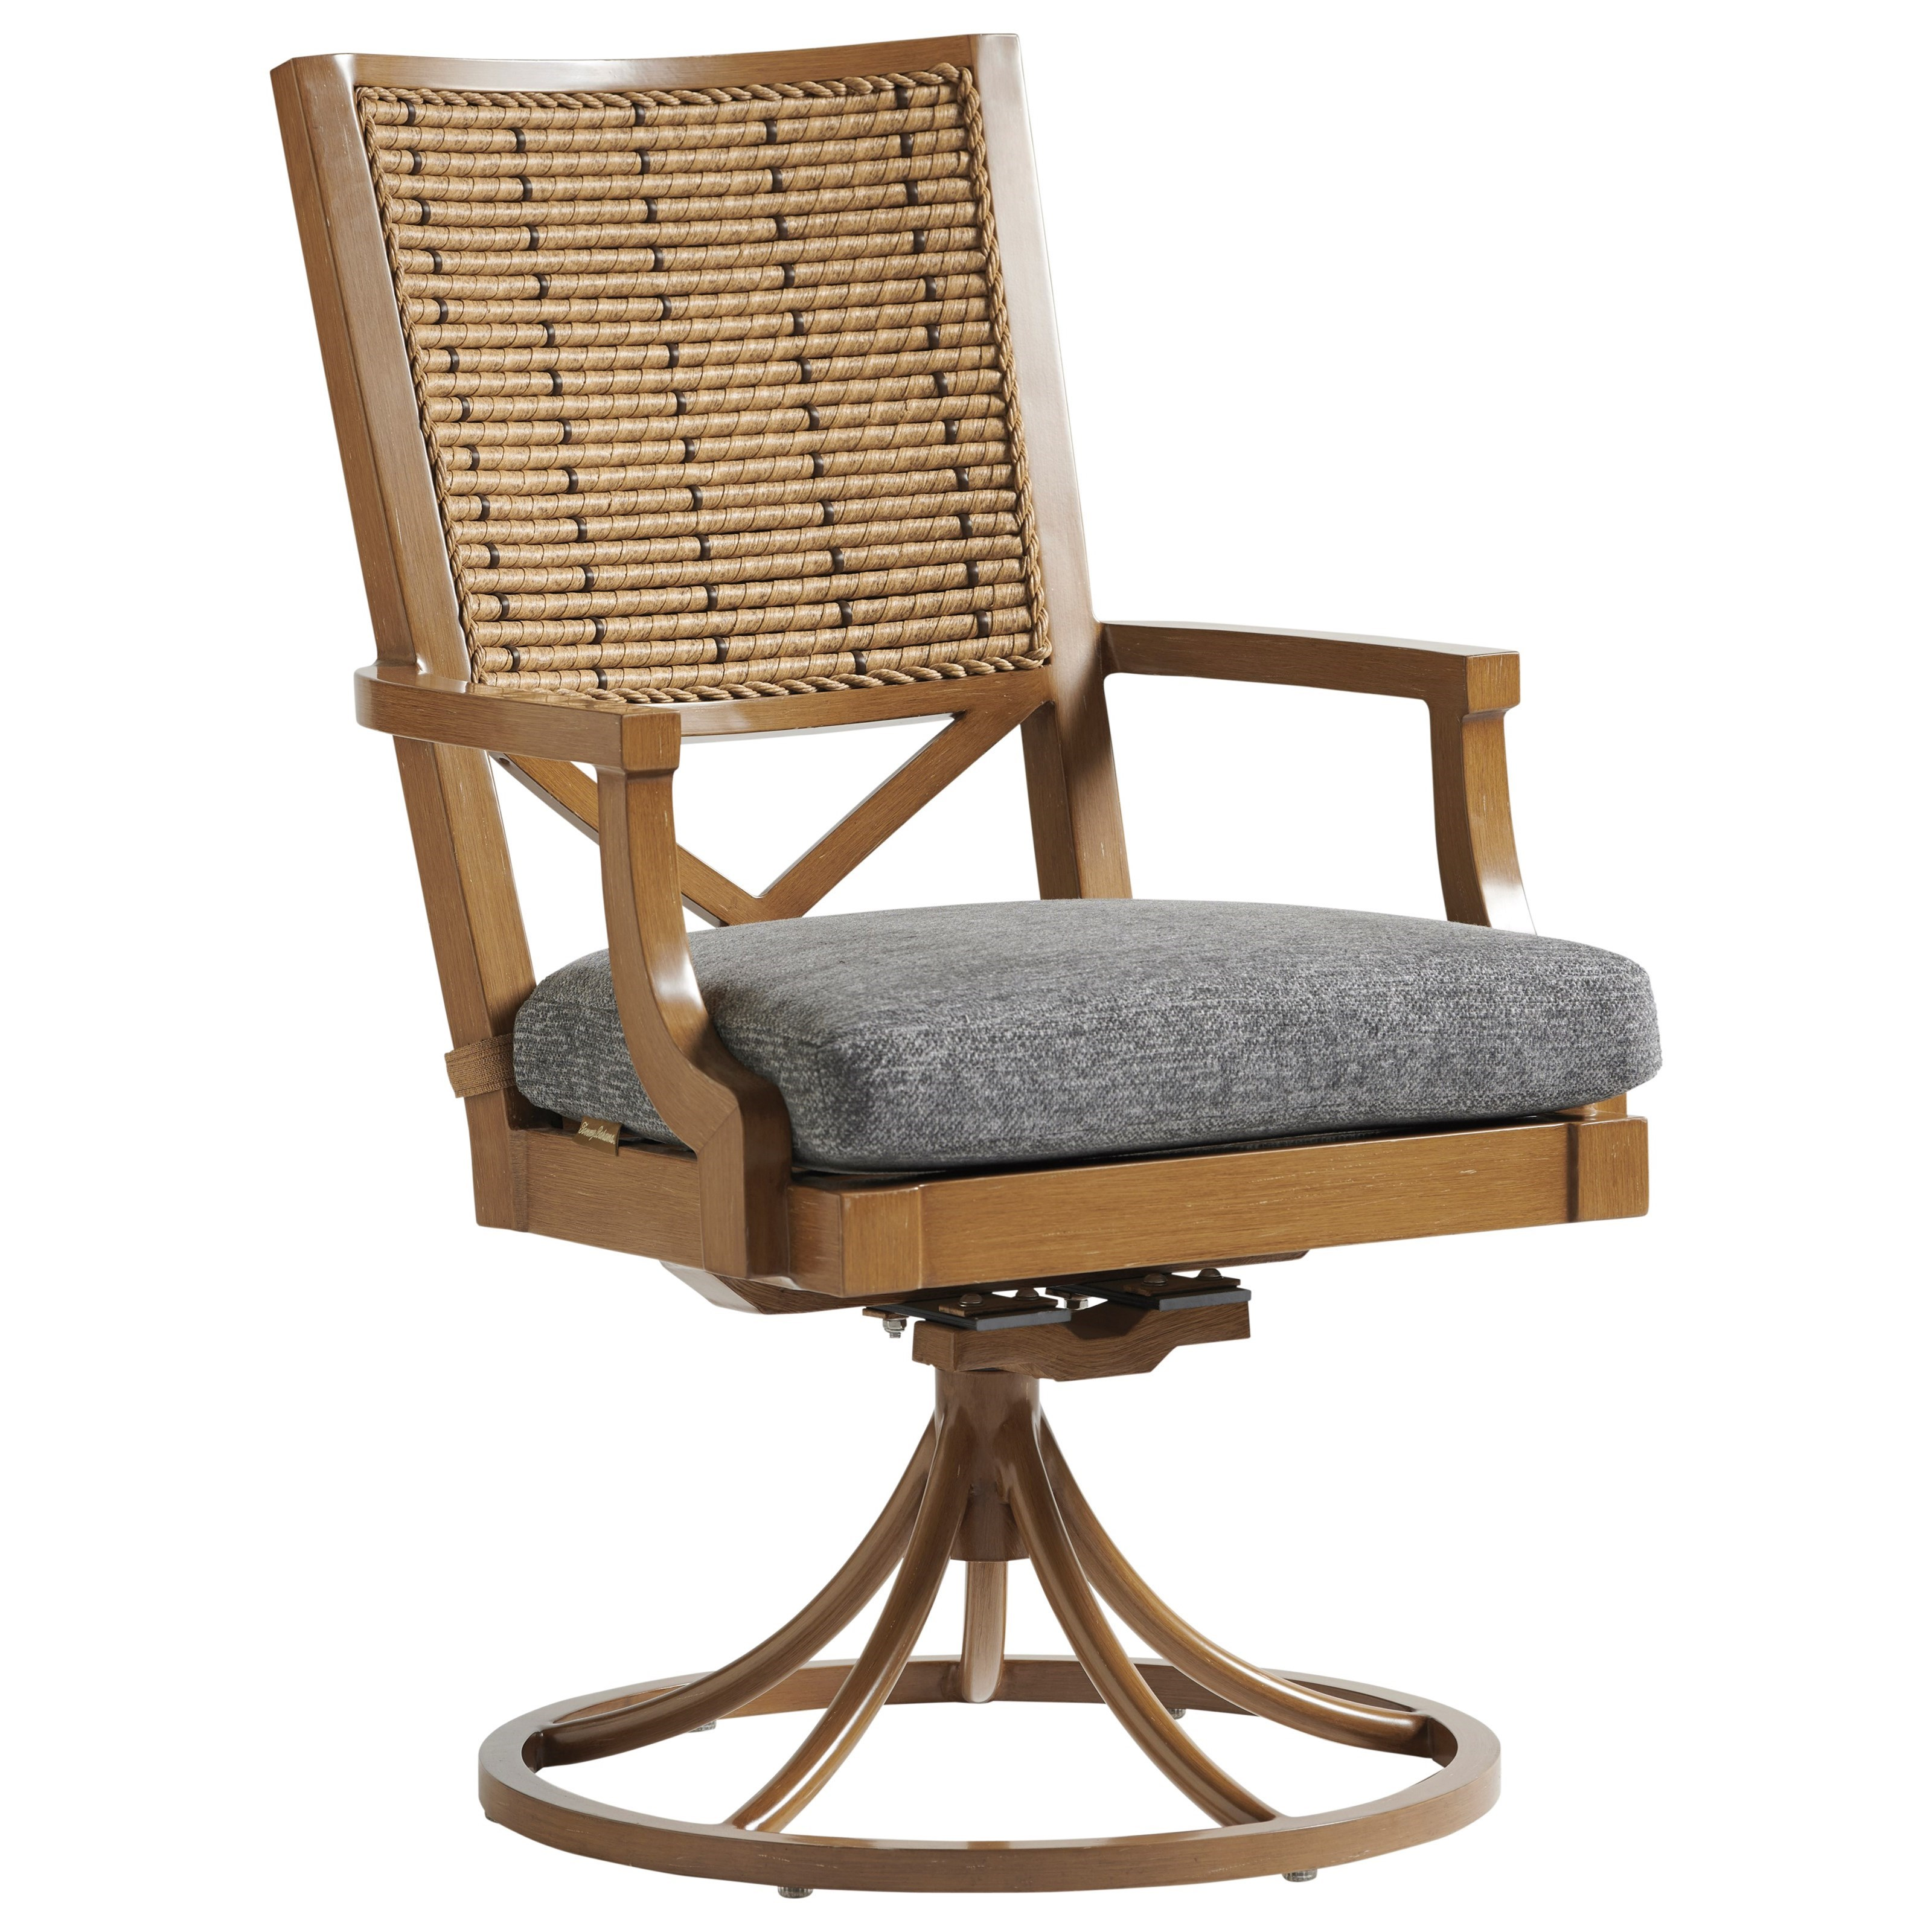 Los Altos Valley View Swivel Rocker Dining Chair by Tommy Bahama Outdoor Living at Baer's Furniture